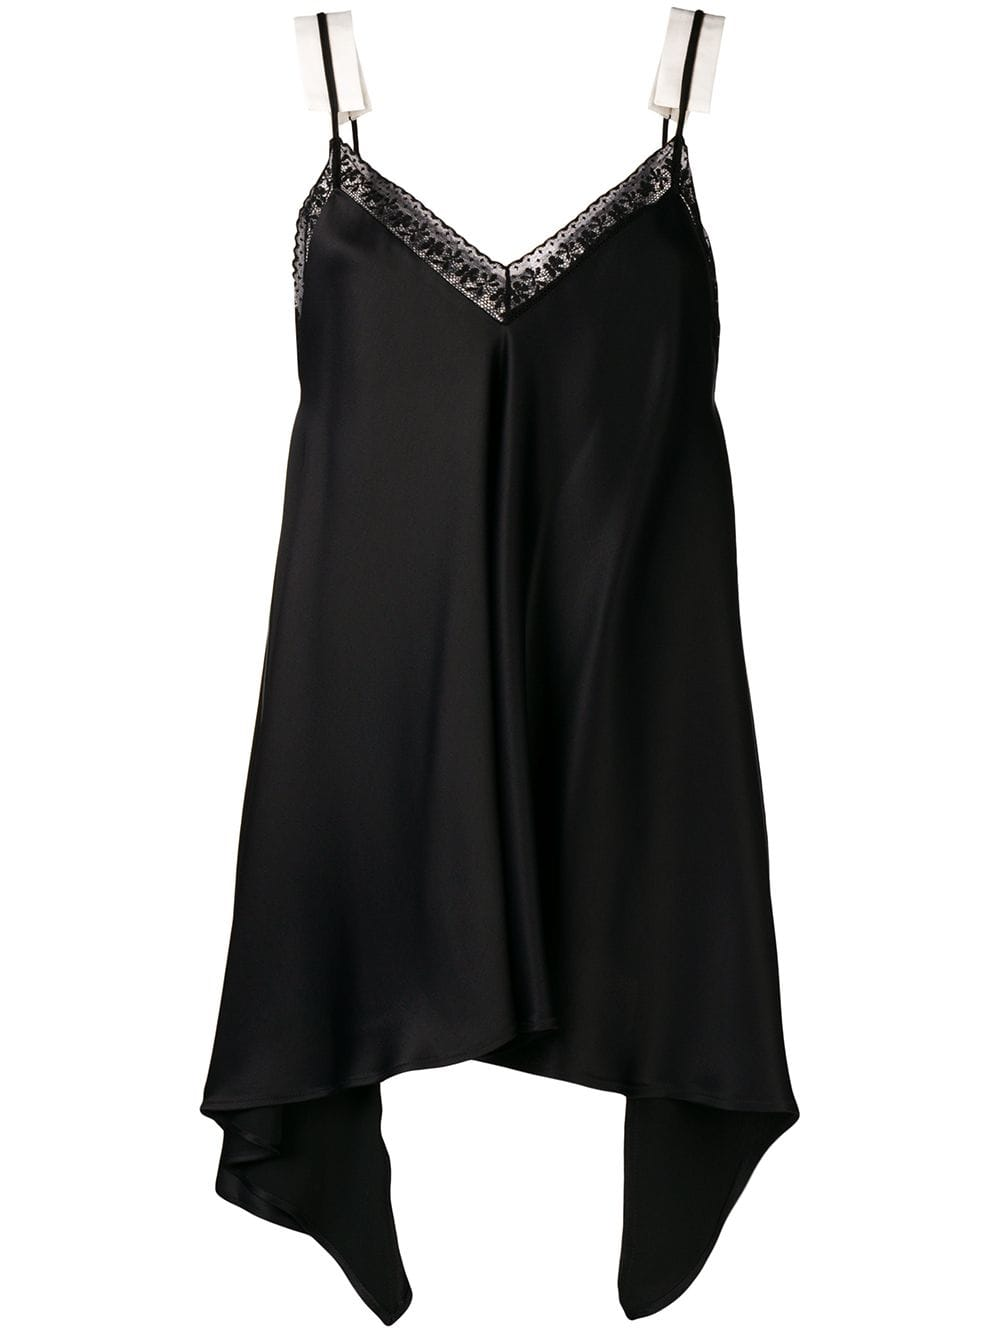 MM6 Heavy Fluid Satin Top - Black